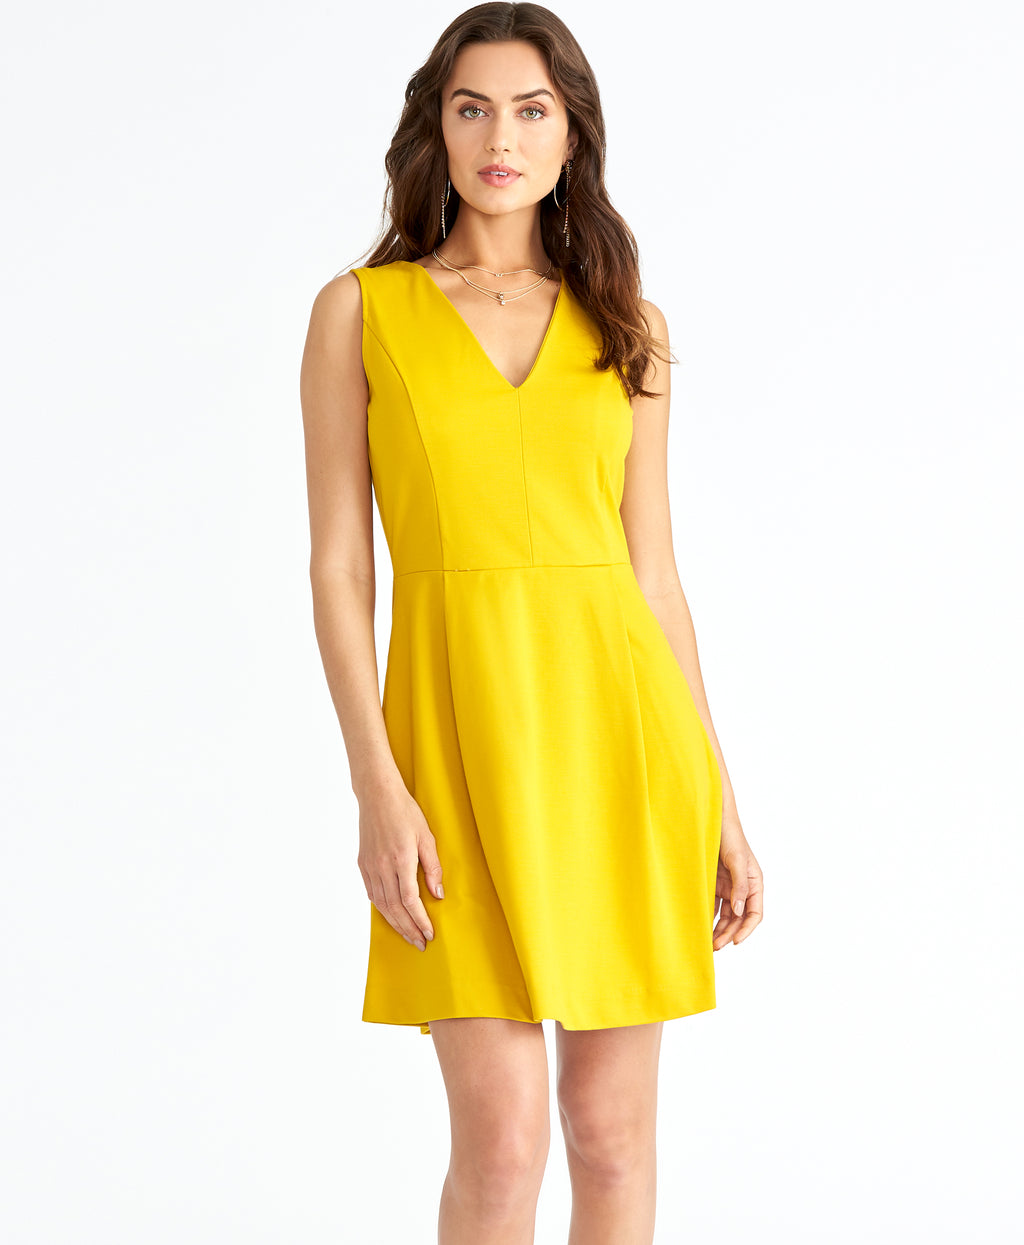 Anise Dress | VIBRANT CANARY